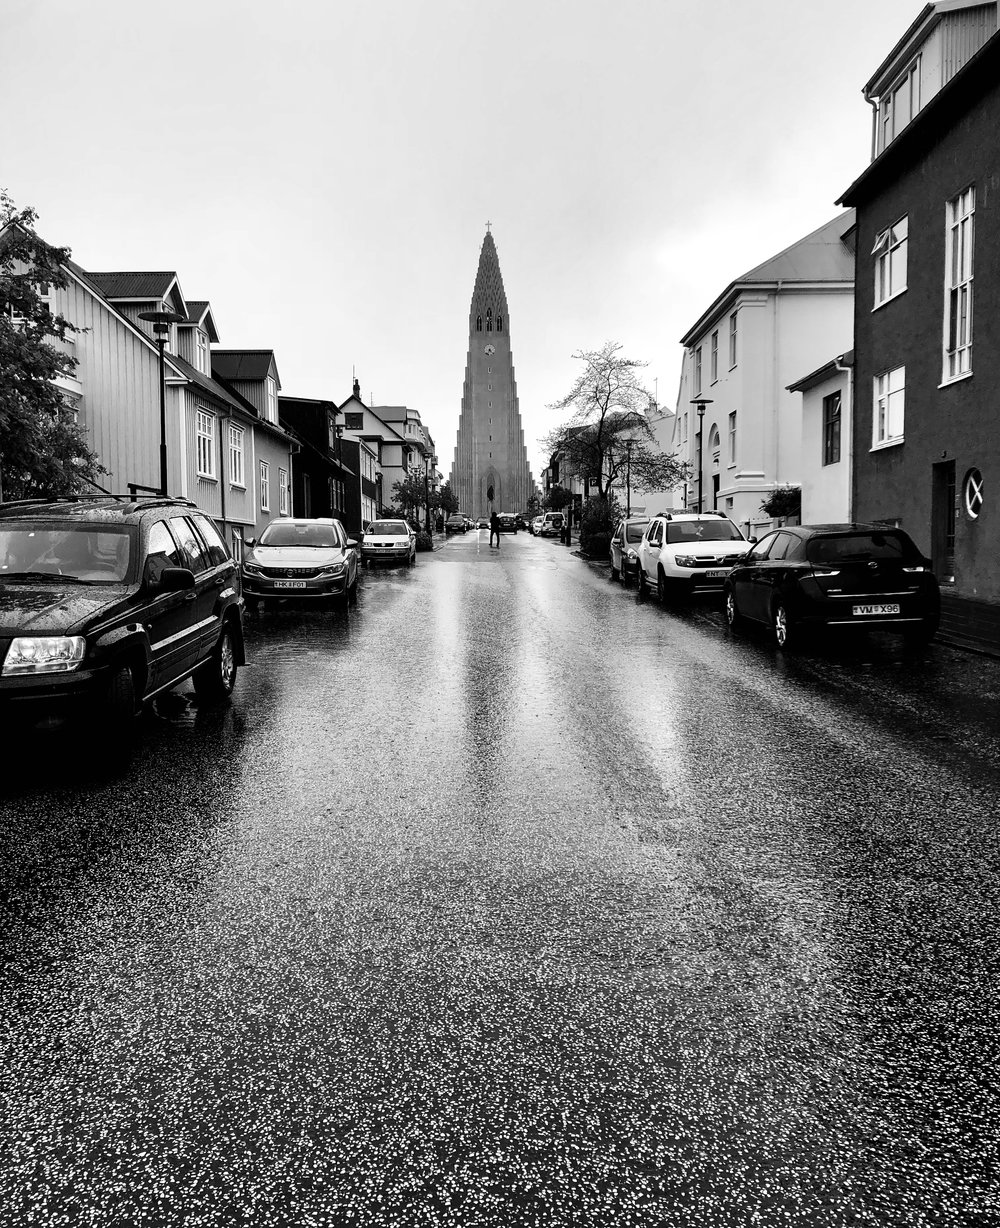 Rainy May day in lovely Reykjavik, Iceland